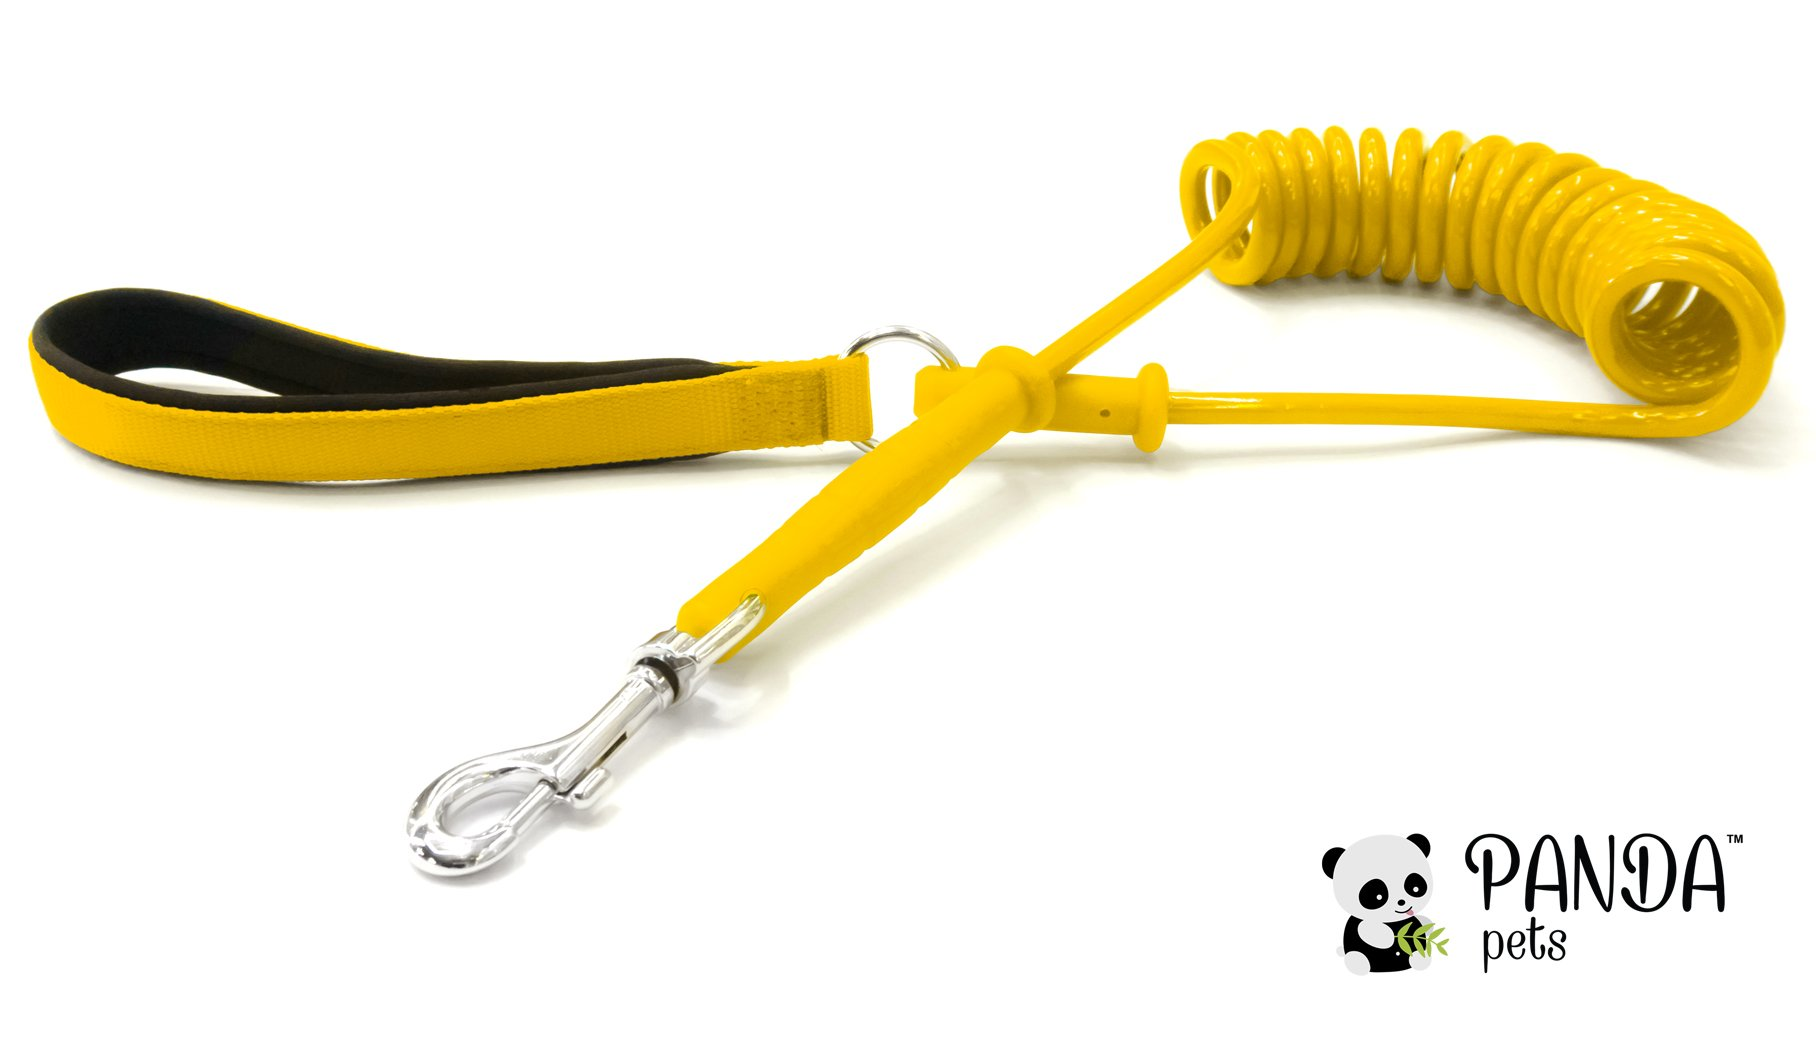 Coiled Dog Leash by Panda Pets - Super Durable - Anti Tangling - Flexible Molded-In Metal - Anti Pull Bungee Effect - Anti Chew - Padded Neoprene Inside (Yellow)